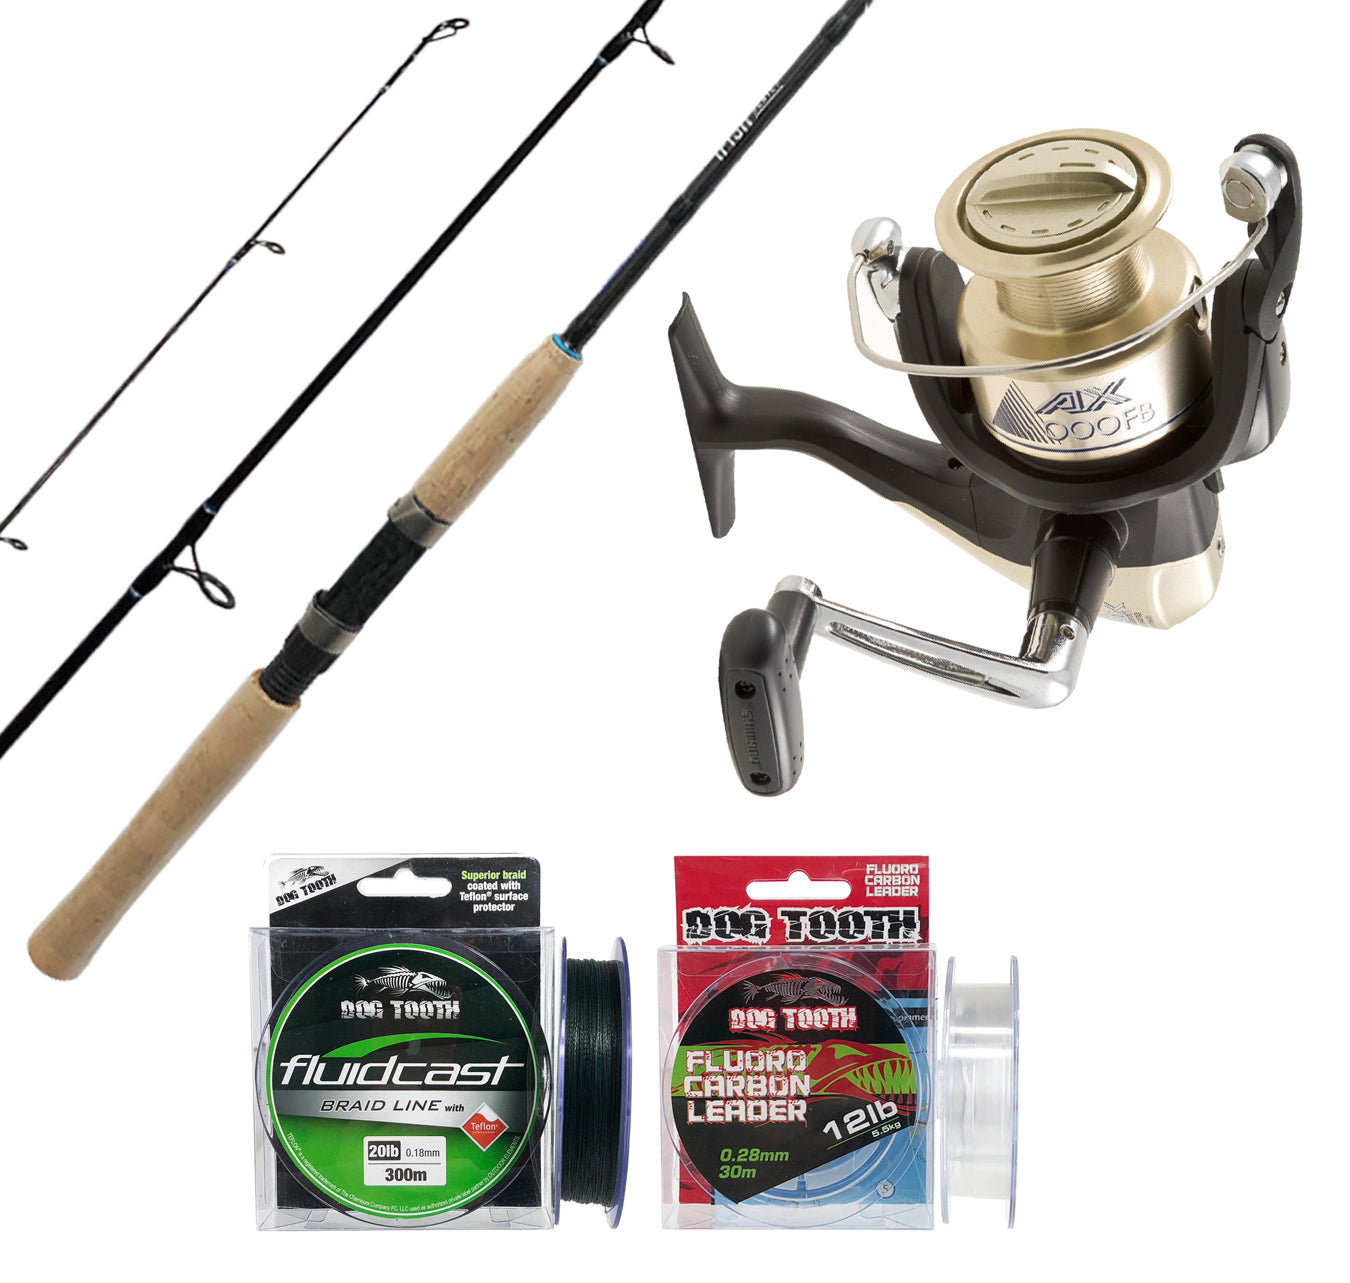 Shimano Ifish 662 3-5kg + AX 2500FB + Line Package